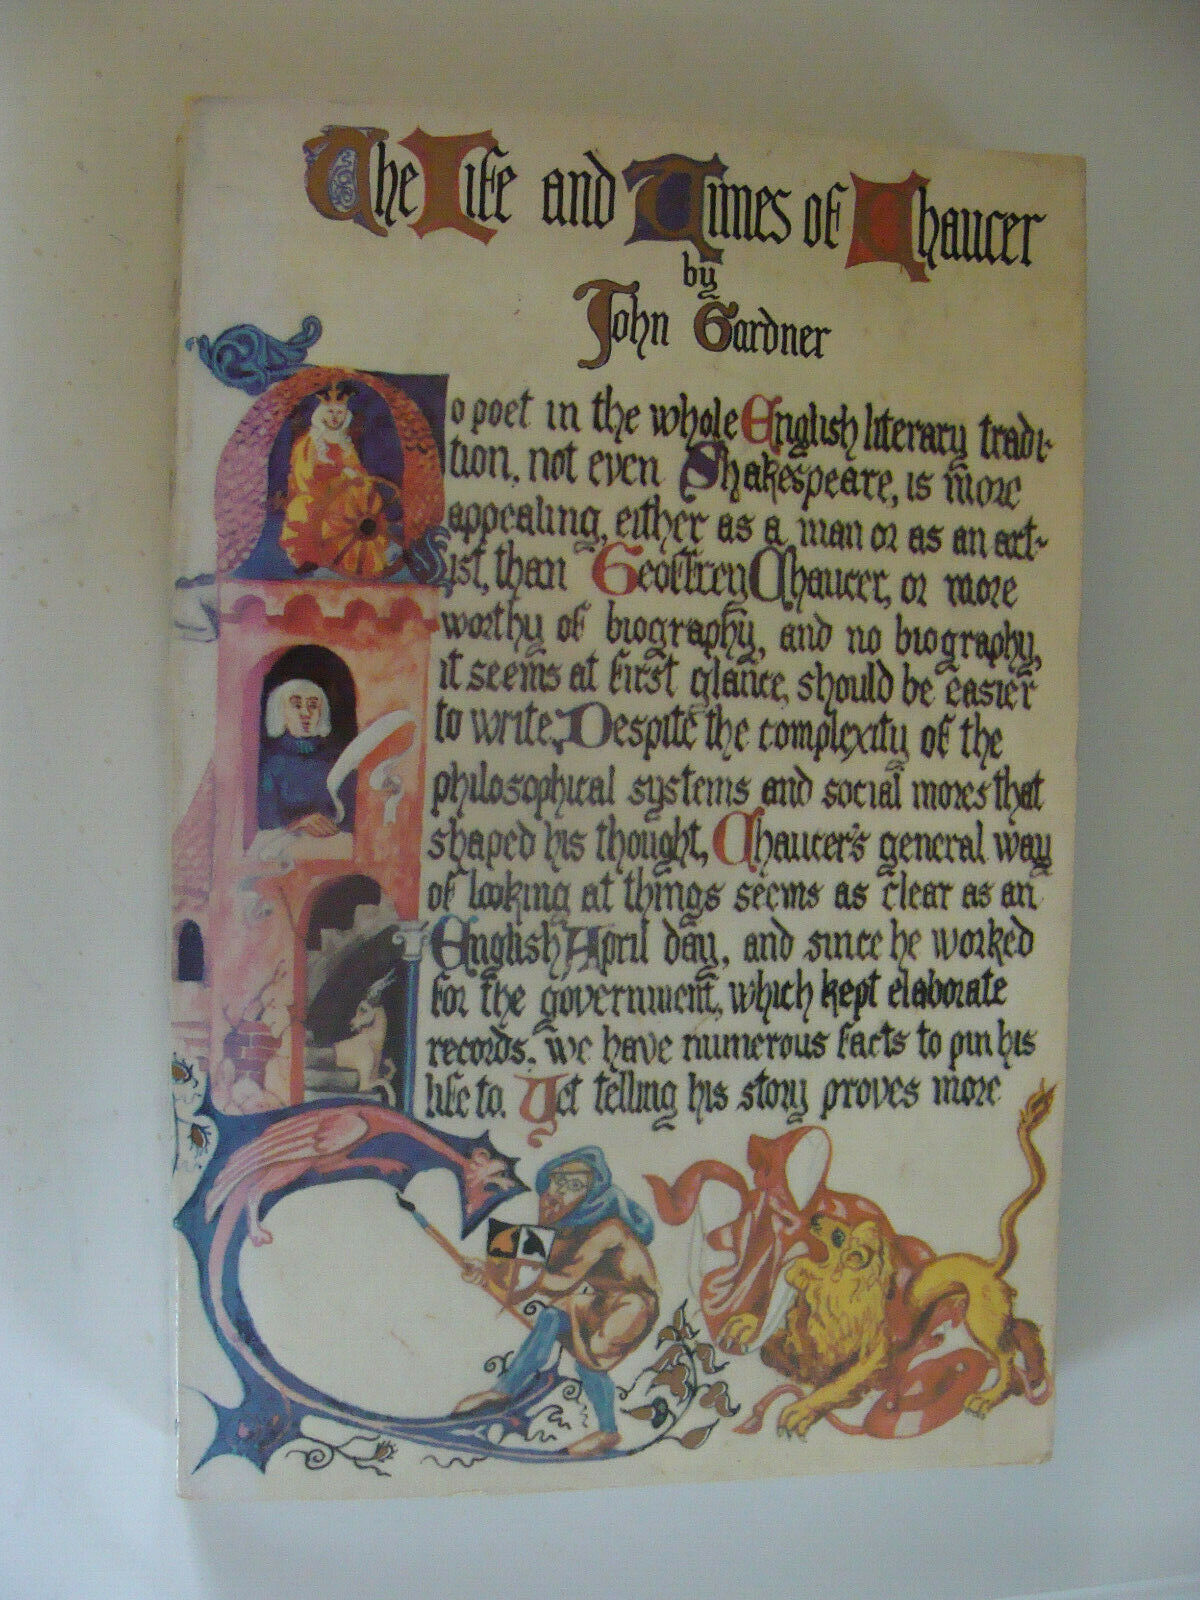 The Life and Times of Chaucer by John Gardner 1977 Geoffrey Chaucer poet |